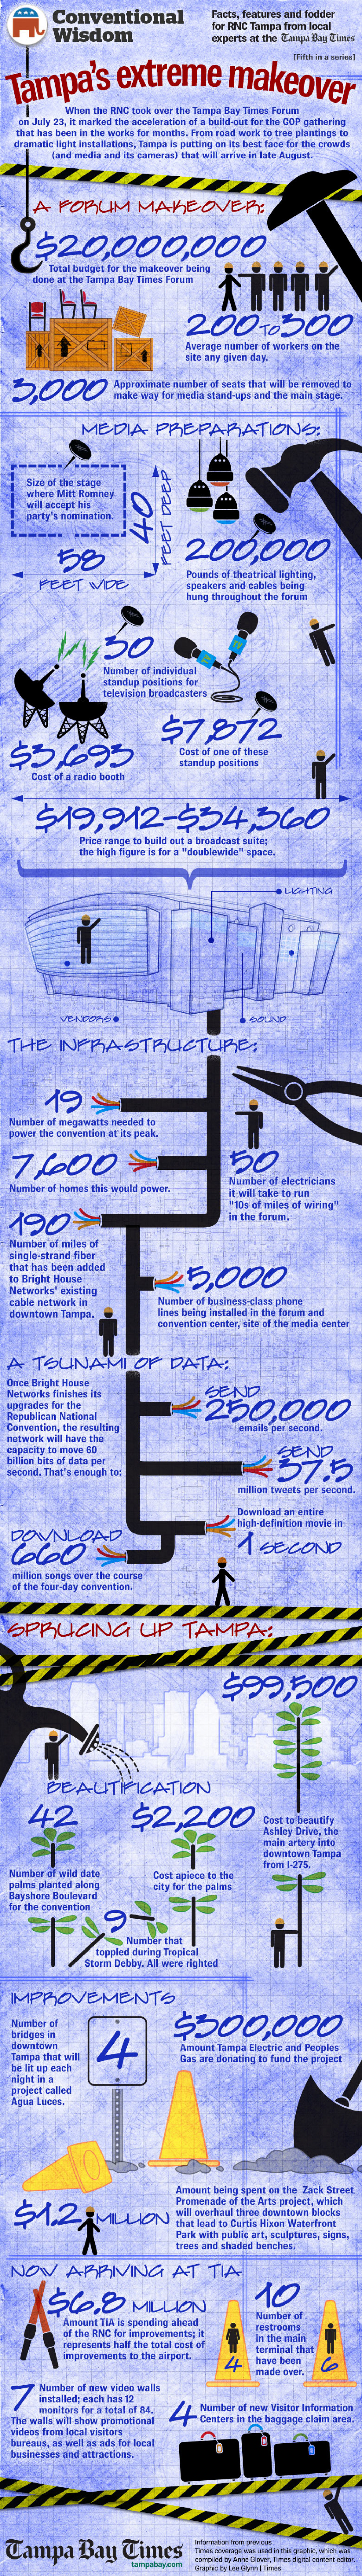 Conventional Wisdom: Tampa's Extreme Makeover Infographic